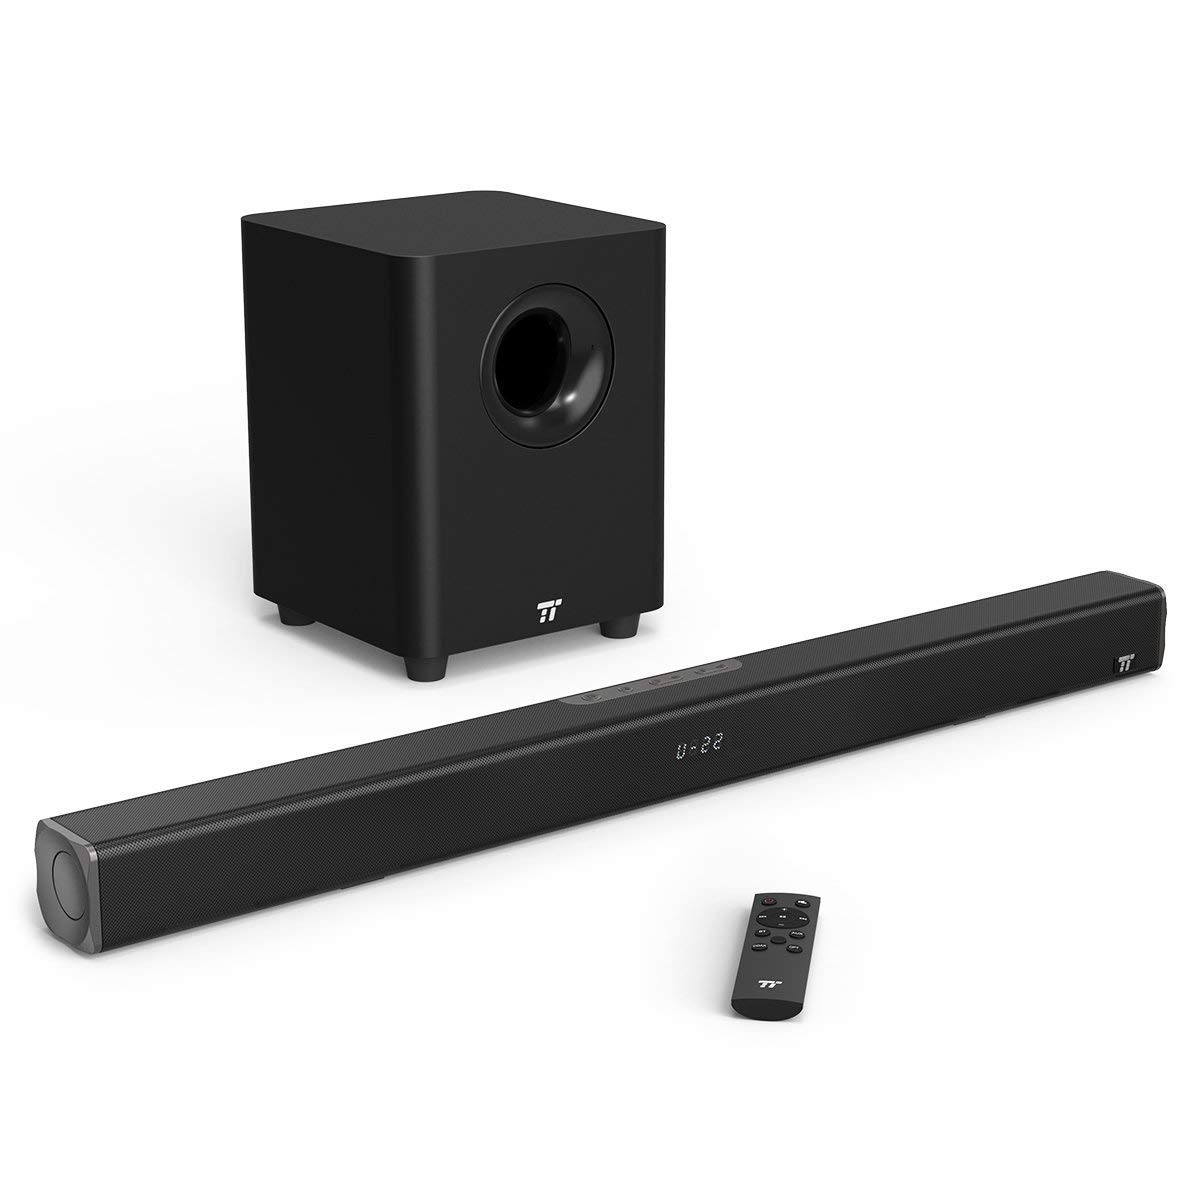 Soundbar, TaoTronics Sound Bars for TV 120W 2.1 Channel Sound bar with Subwoofer Wired & Wireless Bluetooth 4.2 Speakers